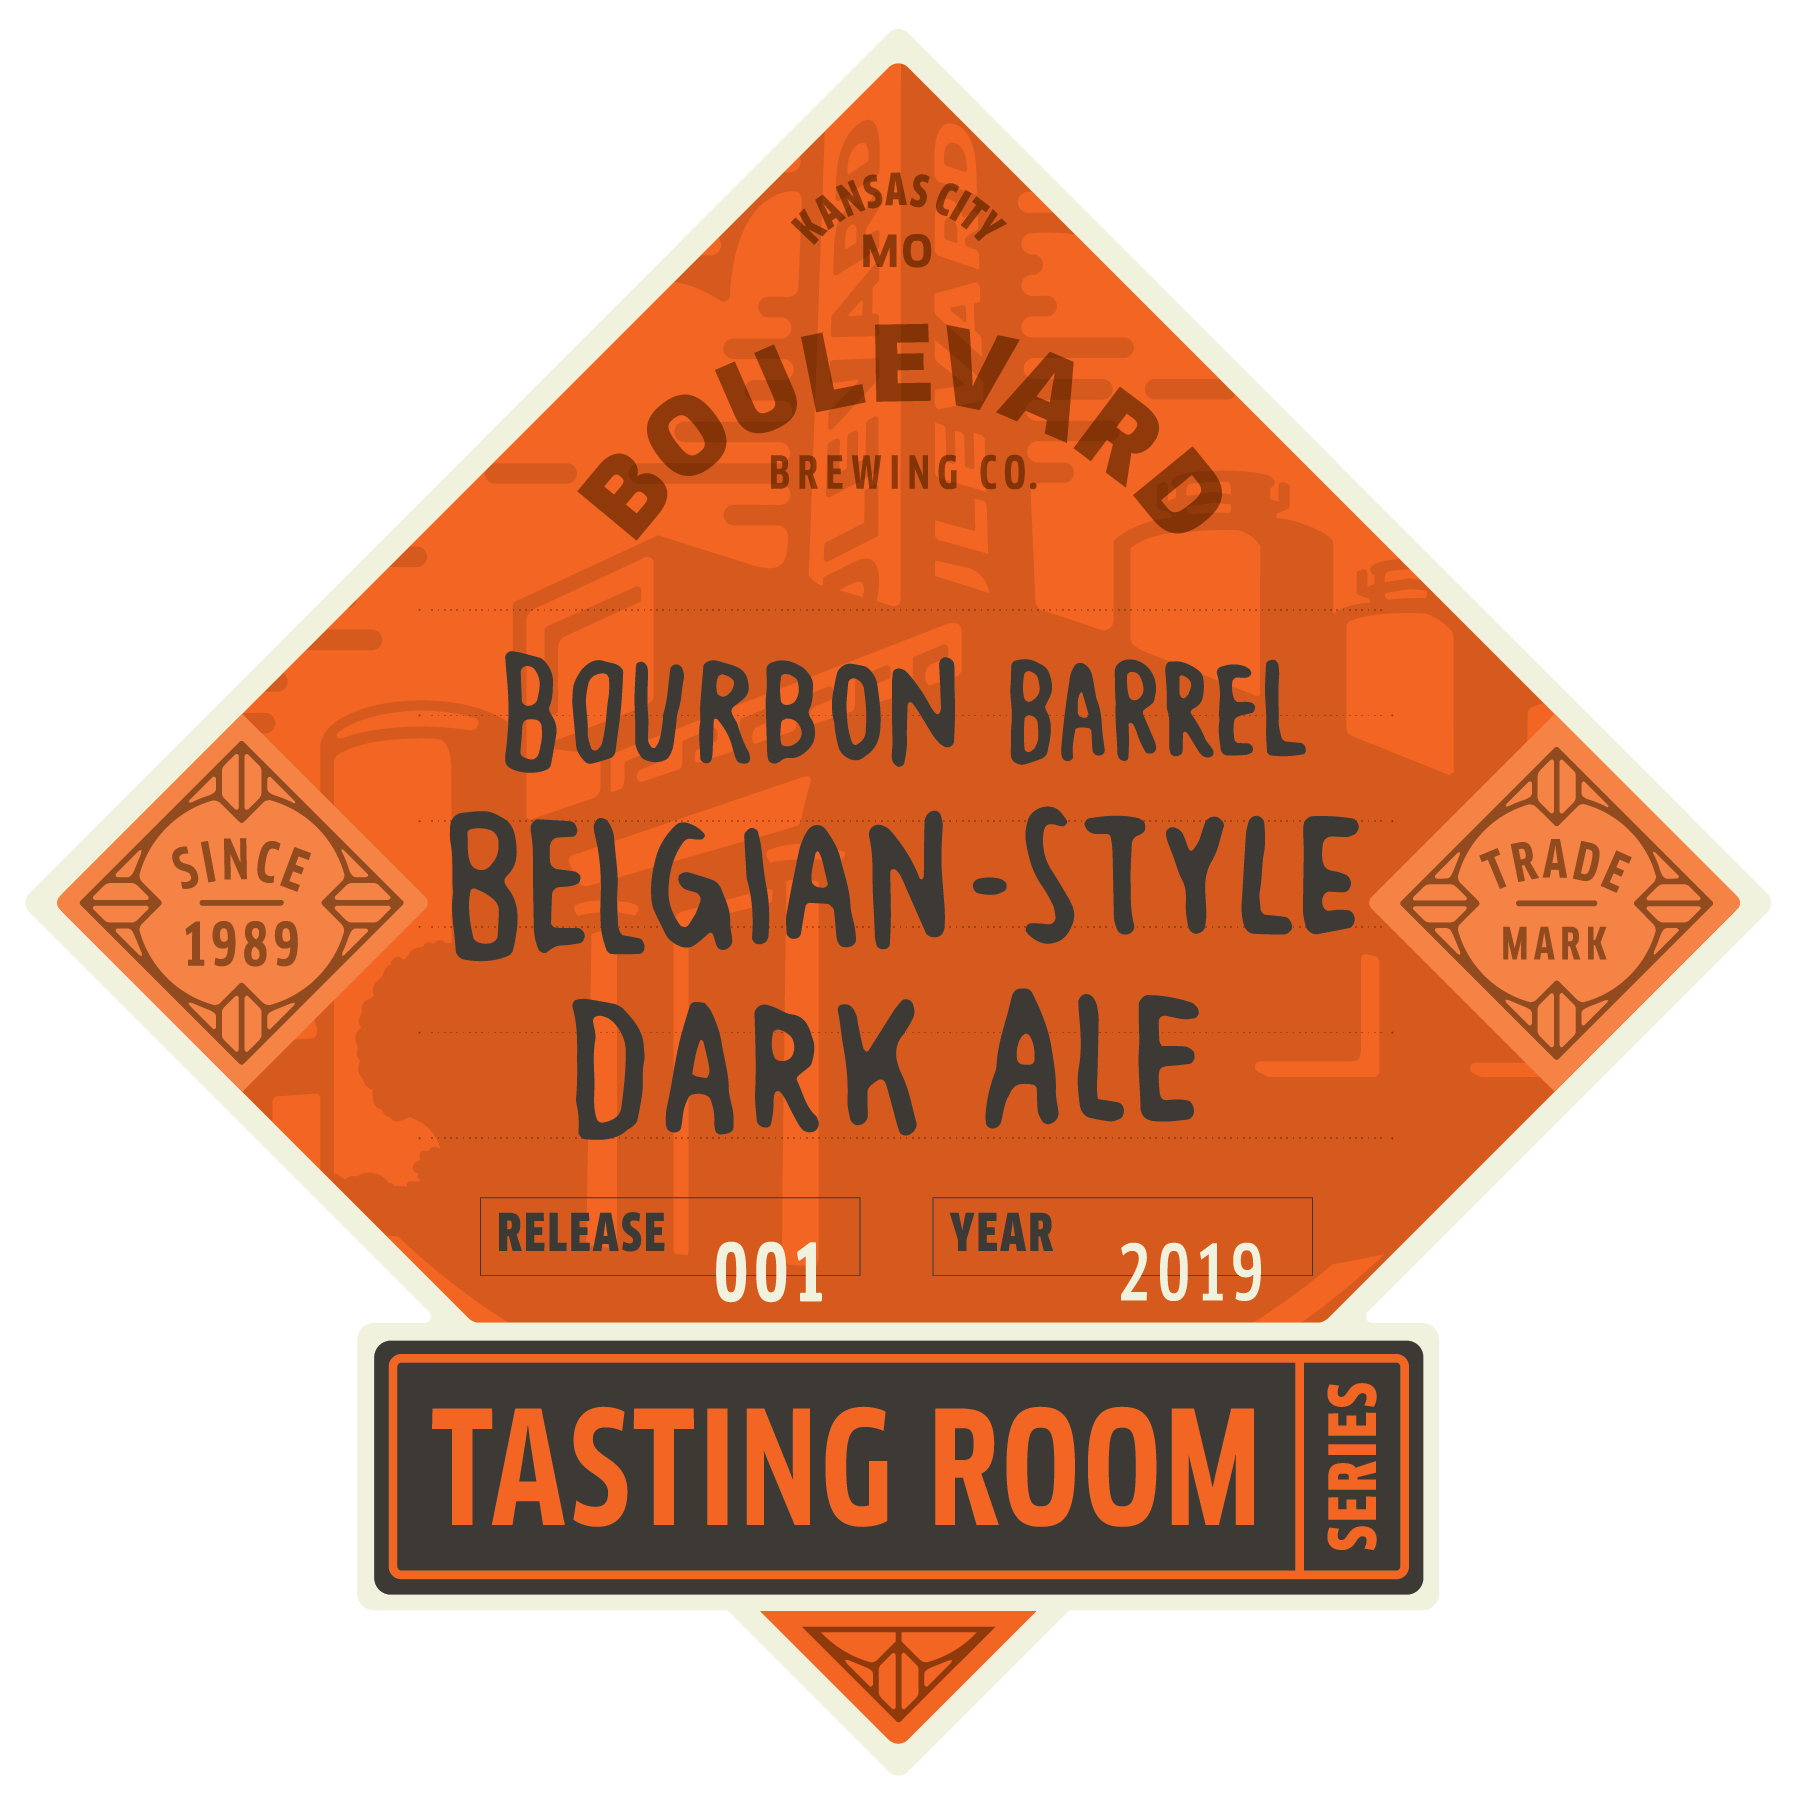 Tasting Room – Bourbon-Barrel Belgian-Style Dark Ale